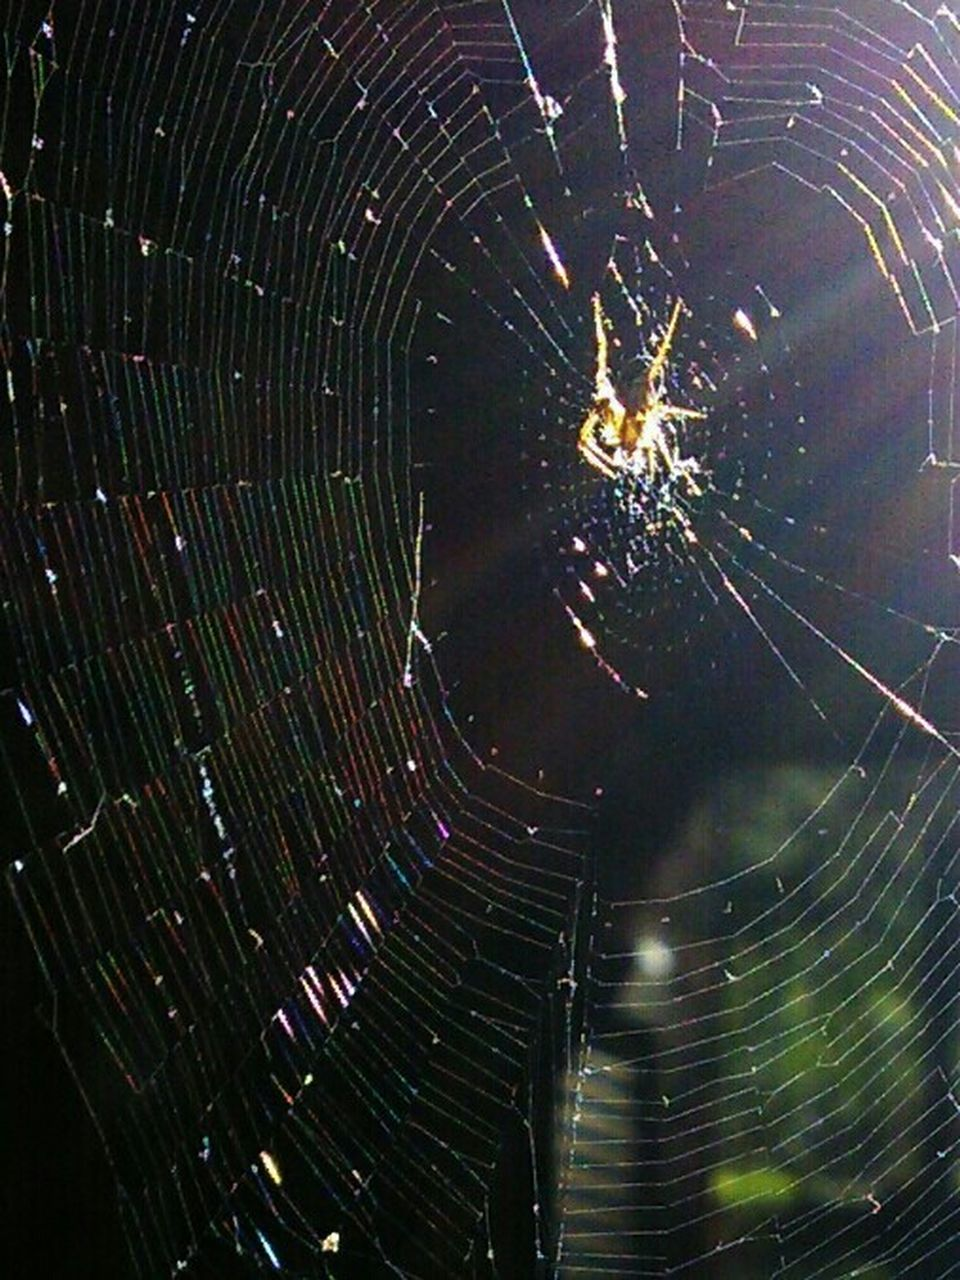 spider, spider web, web, one animal, nature, no people, insect, night, animal themes, outdoors, close-up, animals in the wild, fragility, astronomy, star trail